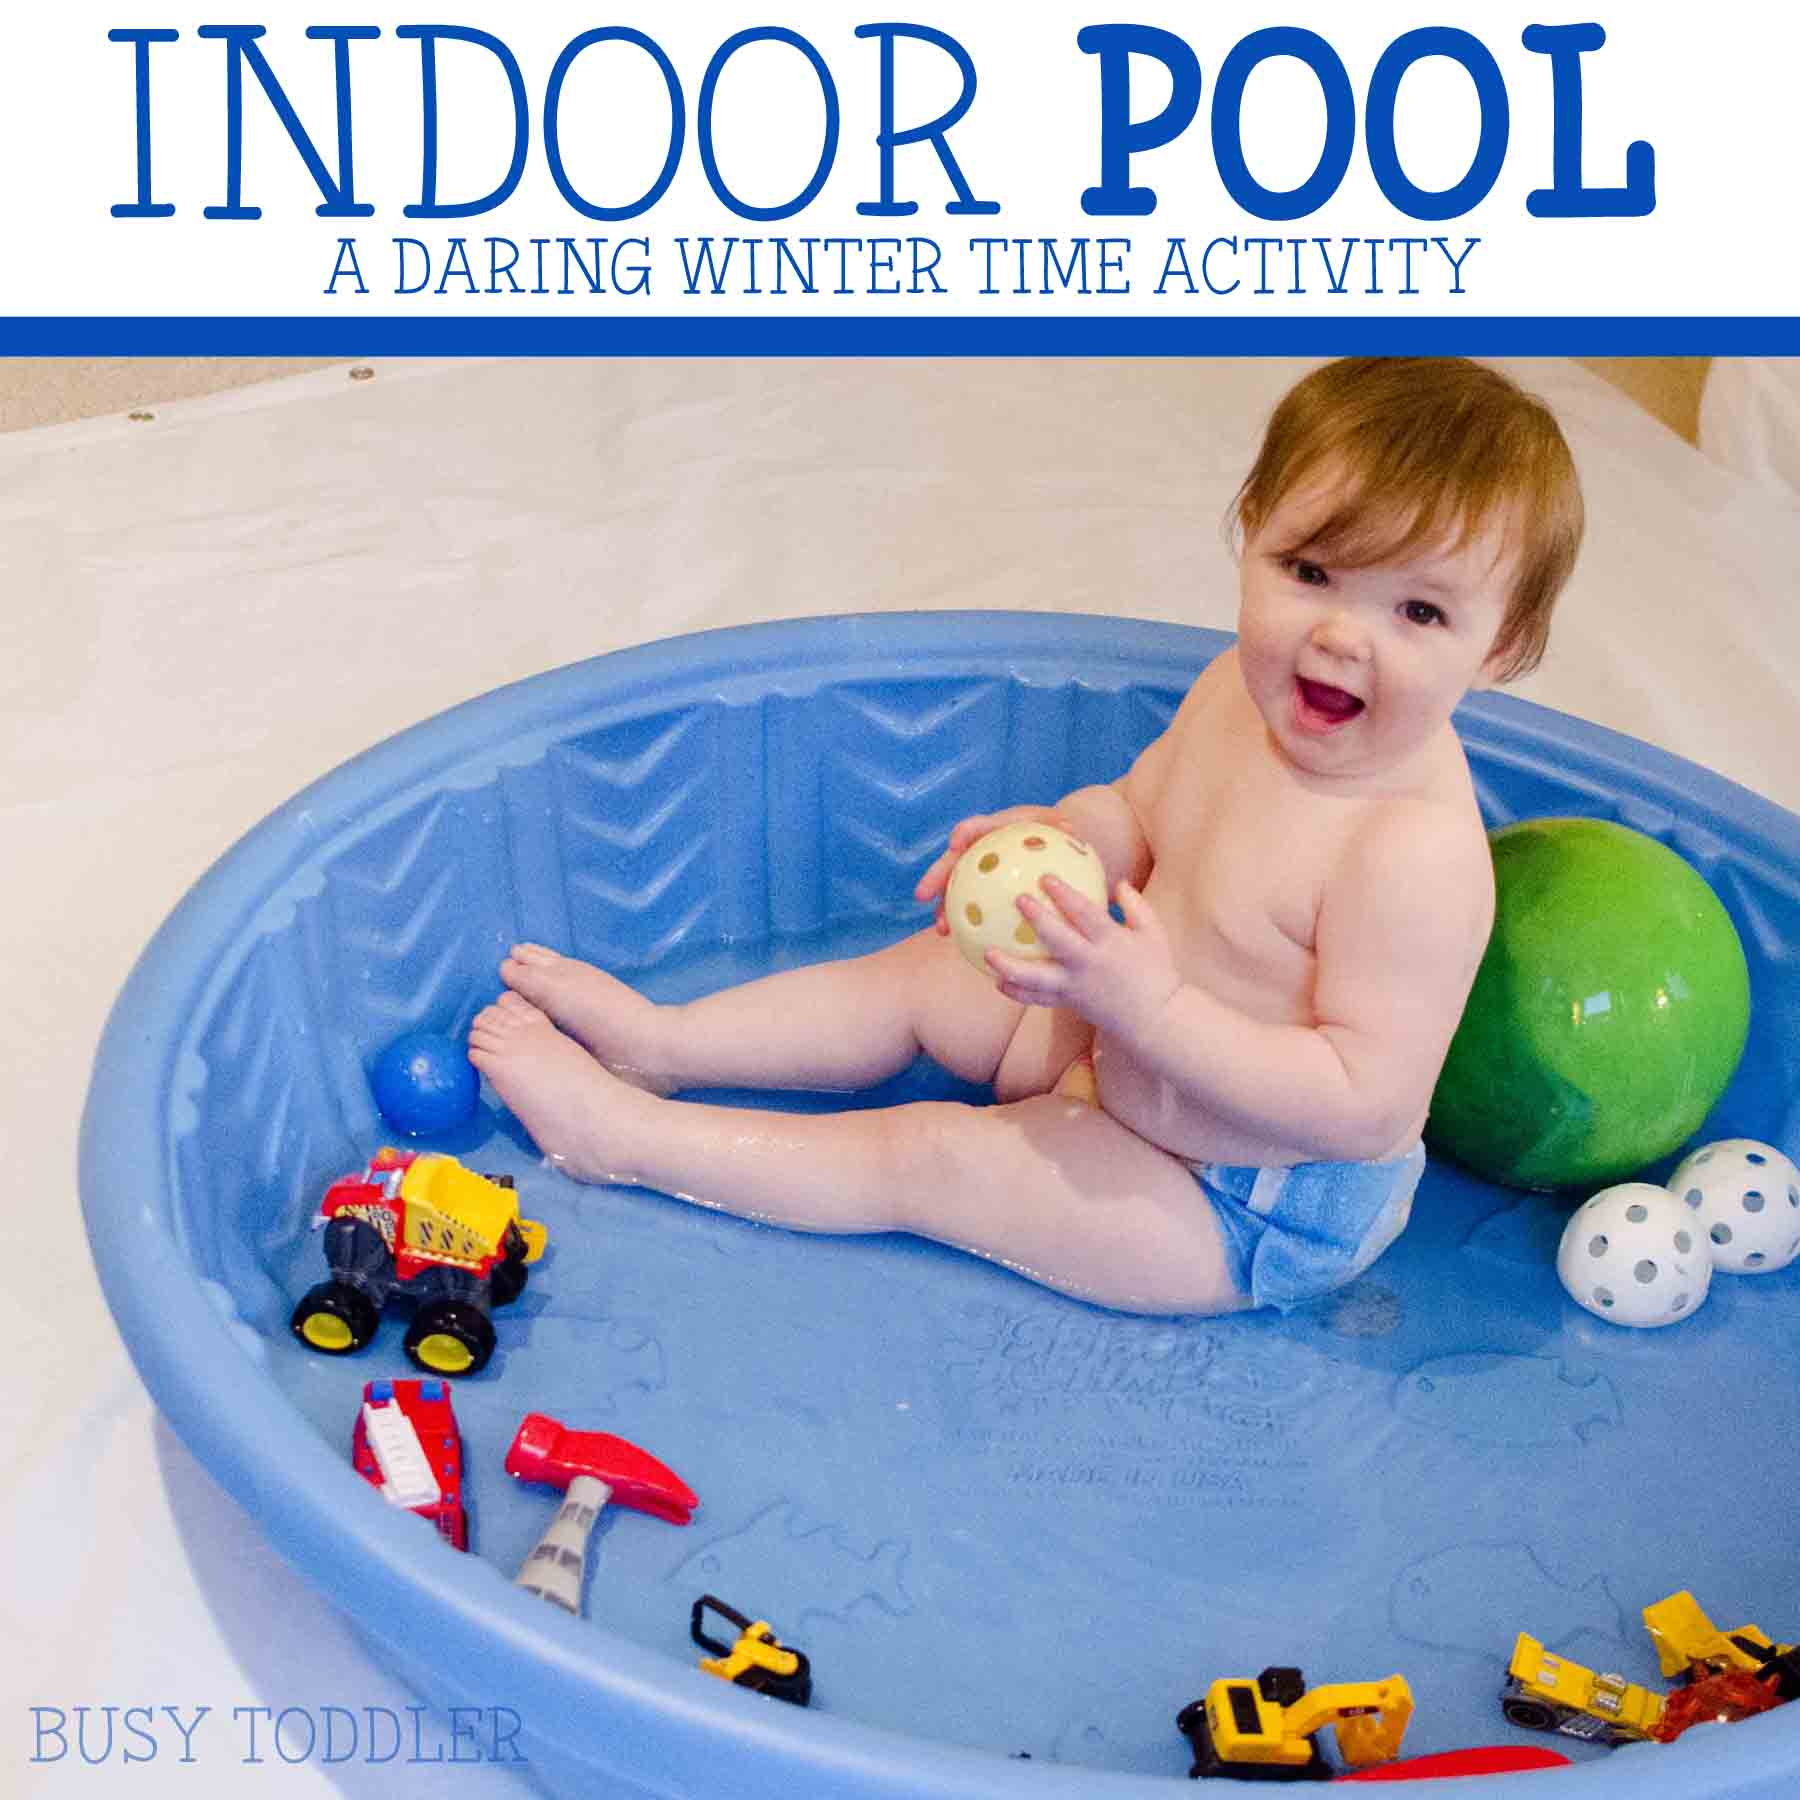 INDOOR POOL:  Create a fun sensory experience with a wintertime pool party. Are you daring enough to try this fun activity?